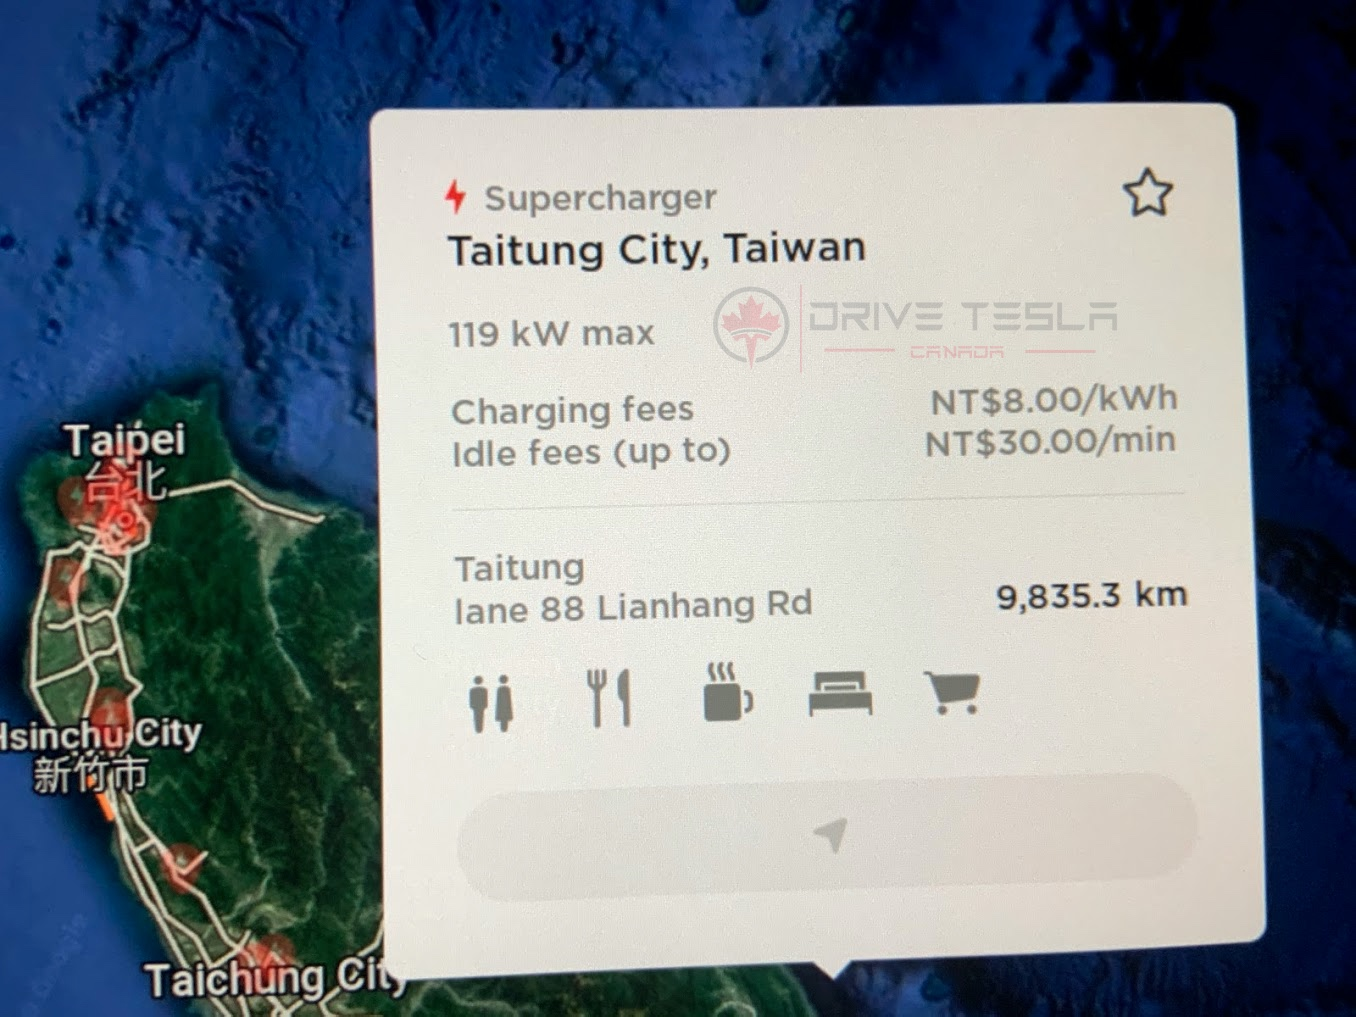 New Taiwan Supercharger fees